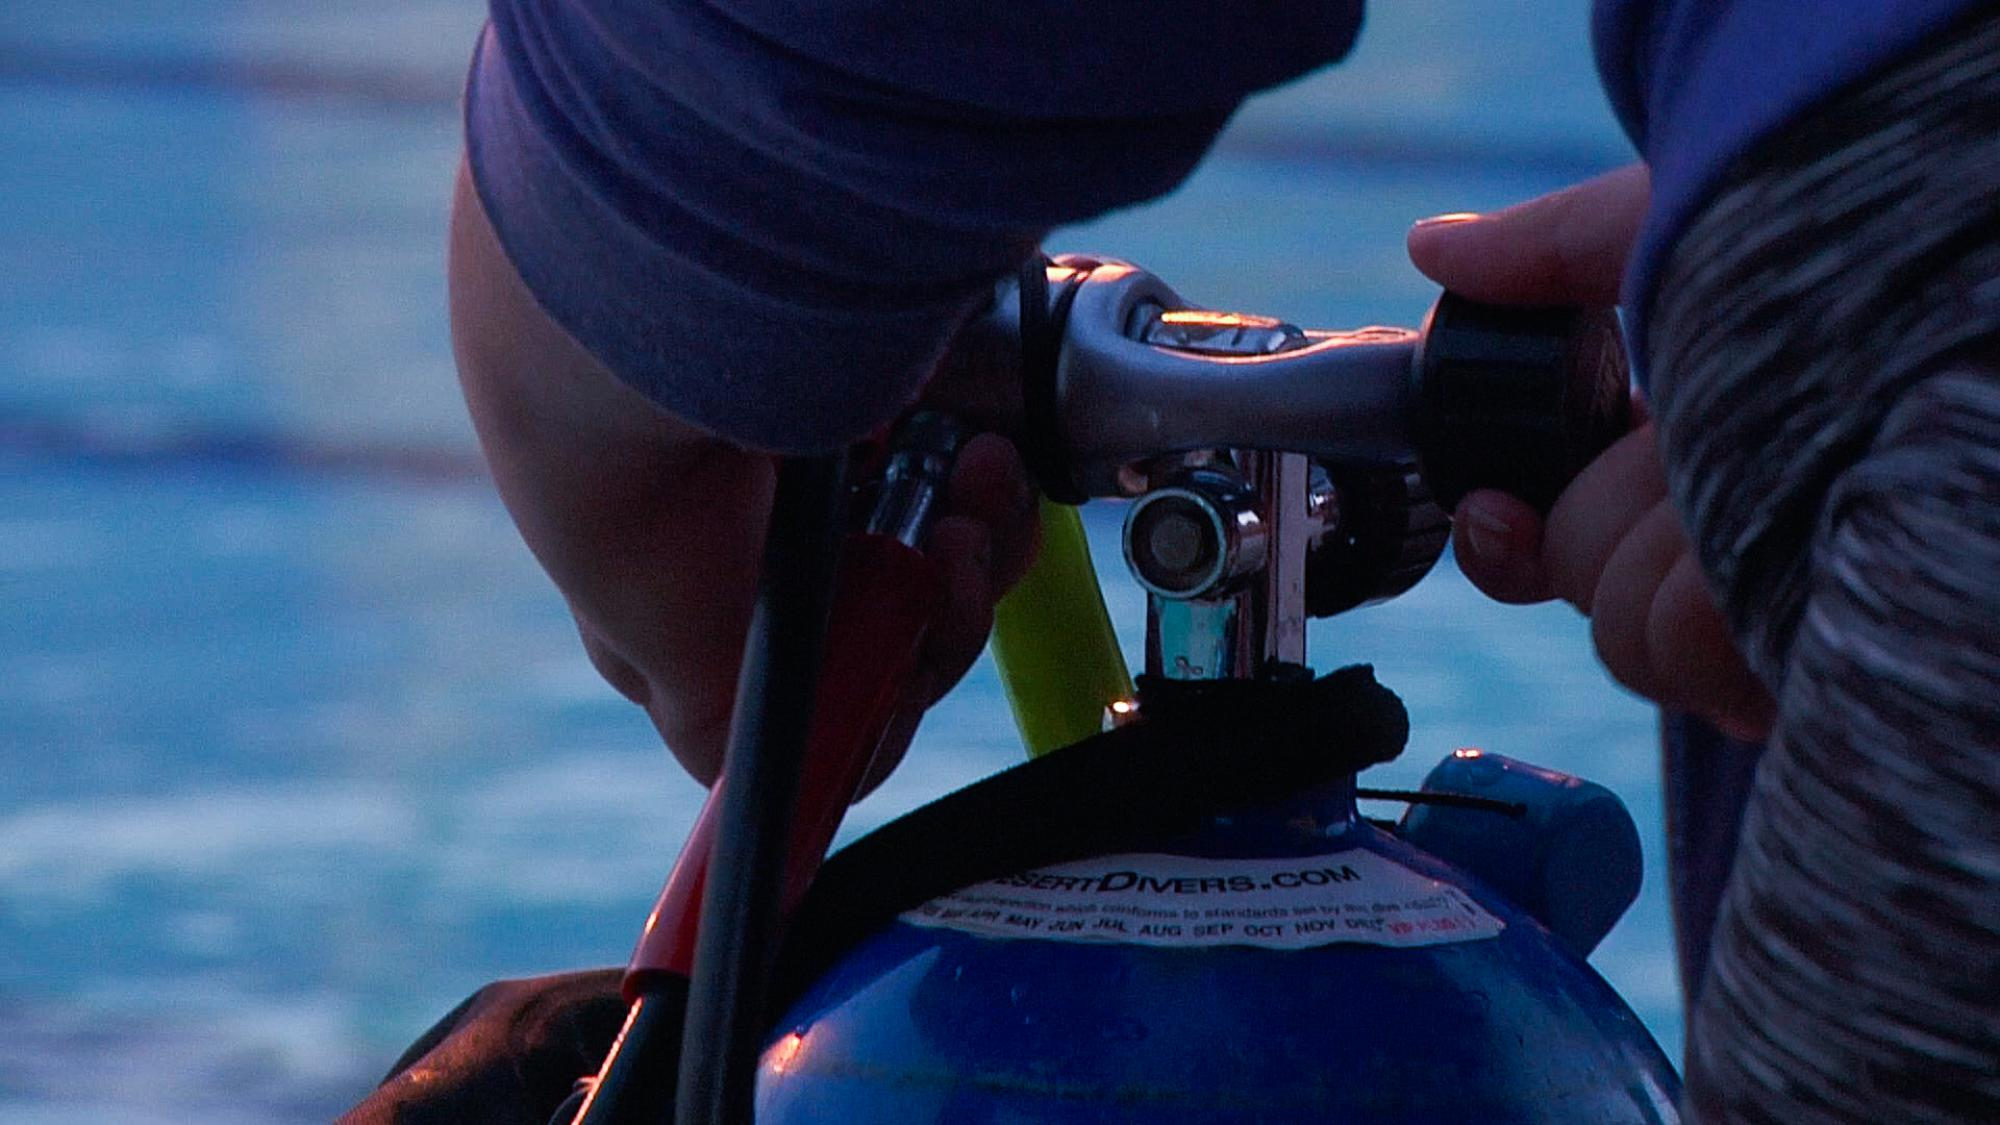 Participants are provided with scuba equipment, including air tanks, to complete the classes.